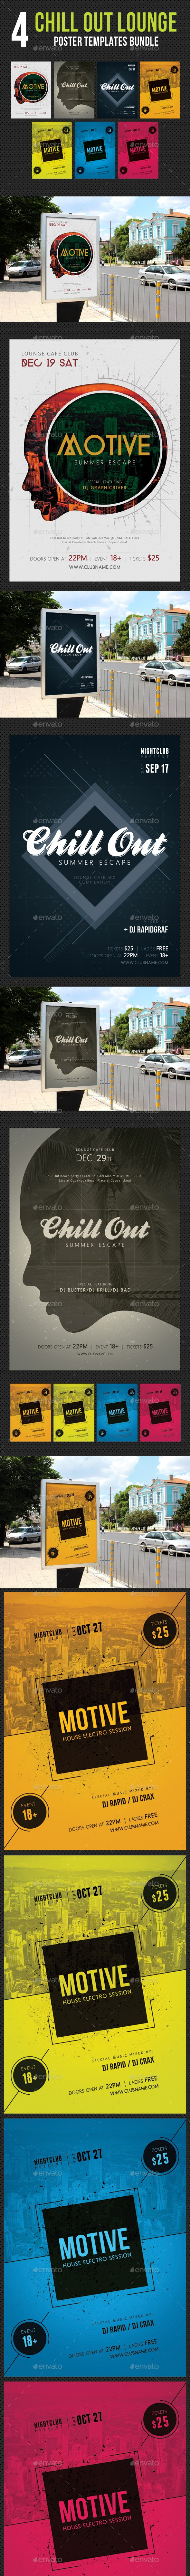 4 in 1 Chill Out Lounge Poster Bundle - Signage Print Templates